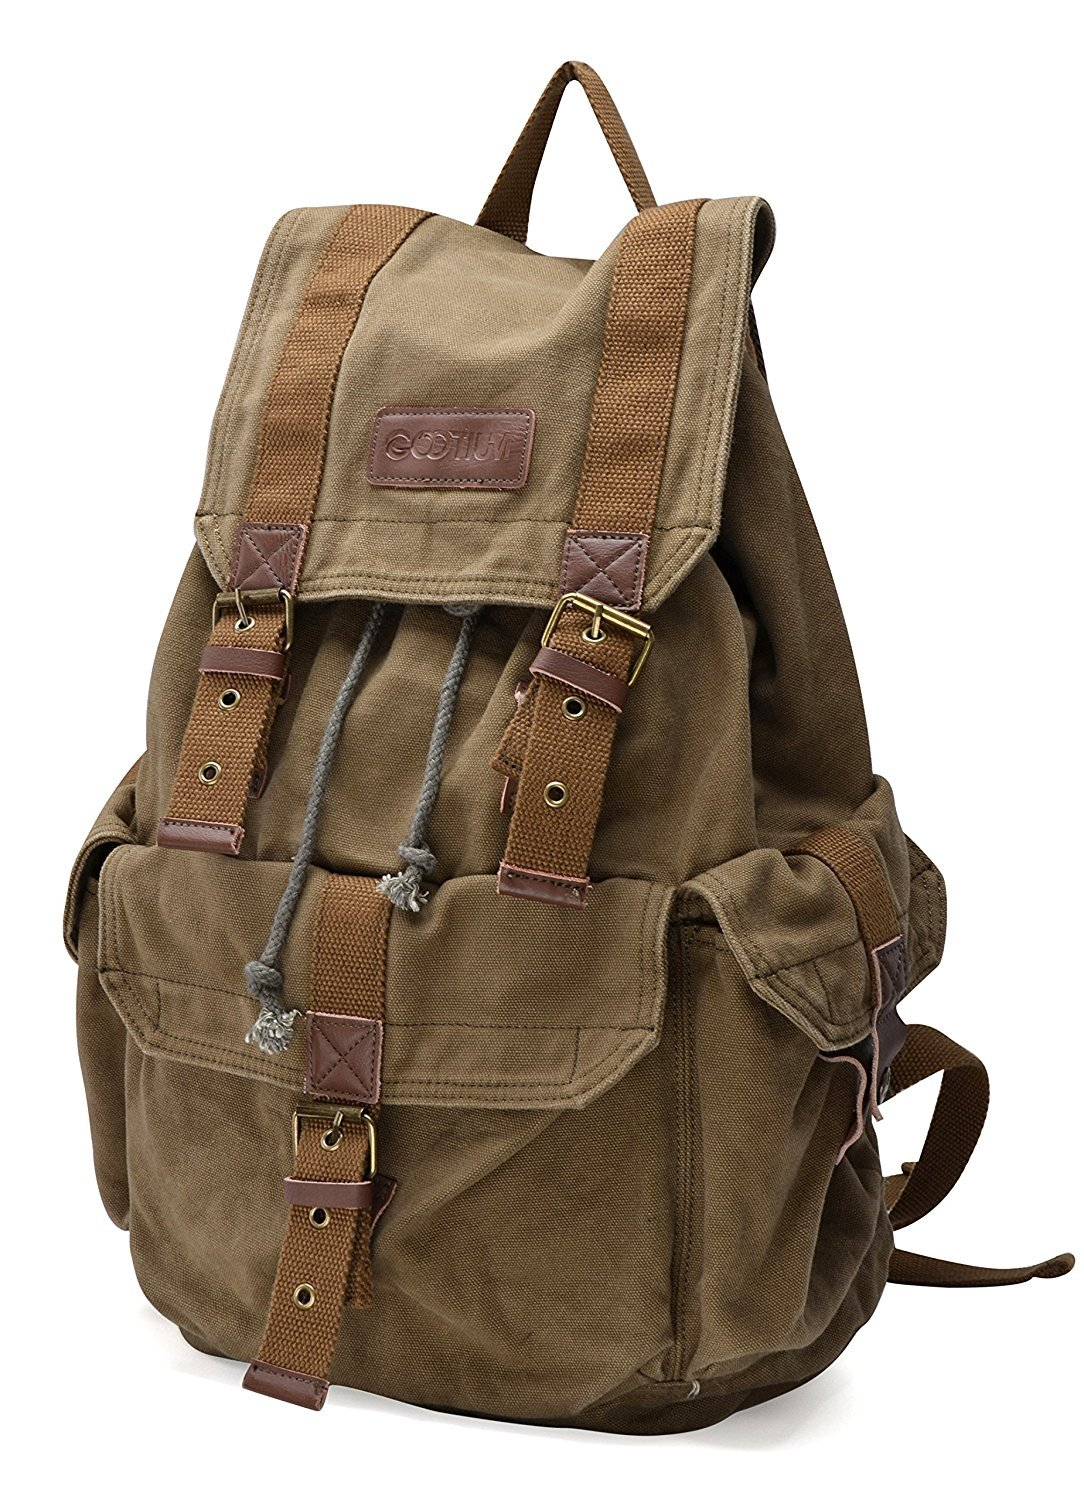 0a4f071bf Gootium 21101 Specially High Density Thick Canvas Backpack Rucksack:  Amazon.in: Sports, Fitness & Outdoors